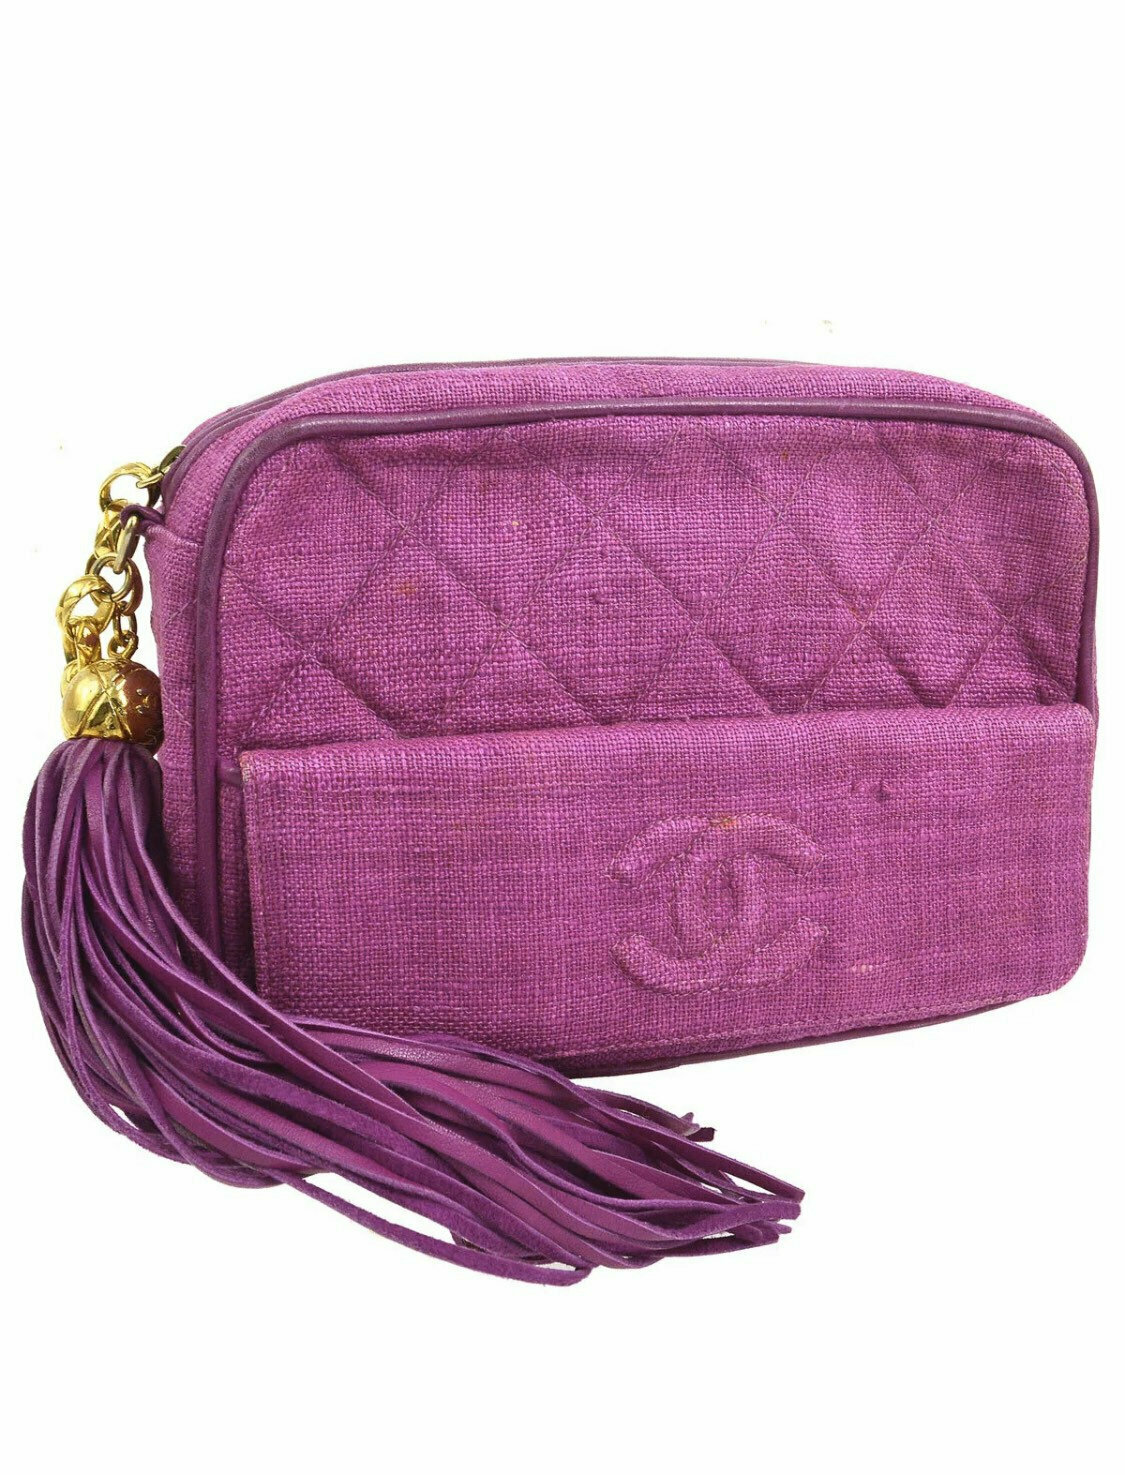 Vintage CHANEL CC Logo Matelasse Quilted Pink Linen / Leather Chain CROSSBODY Camera Bag Clutch Purse Bag with fringe tassel